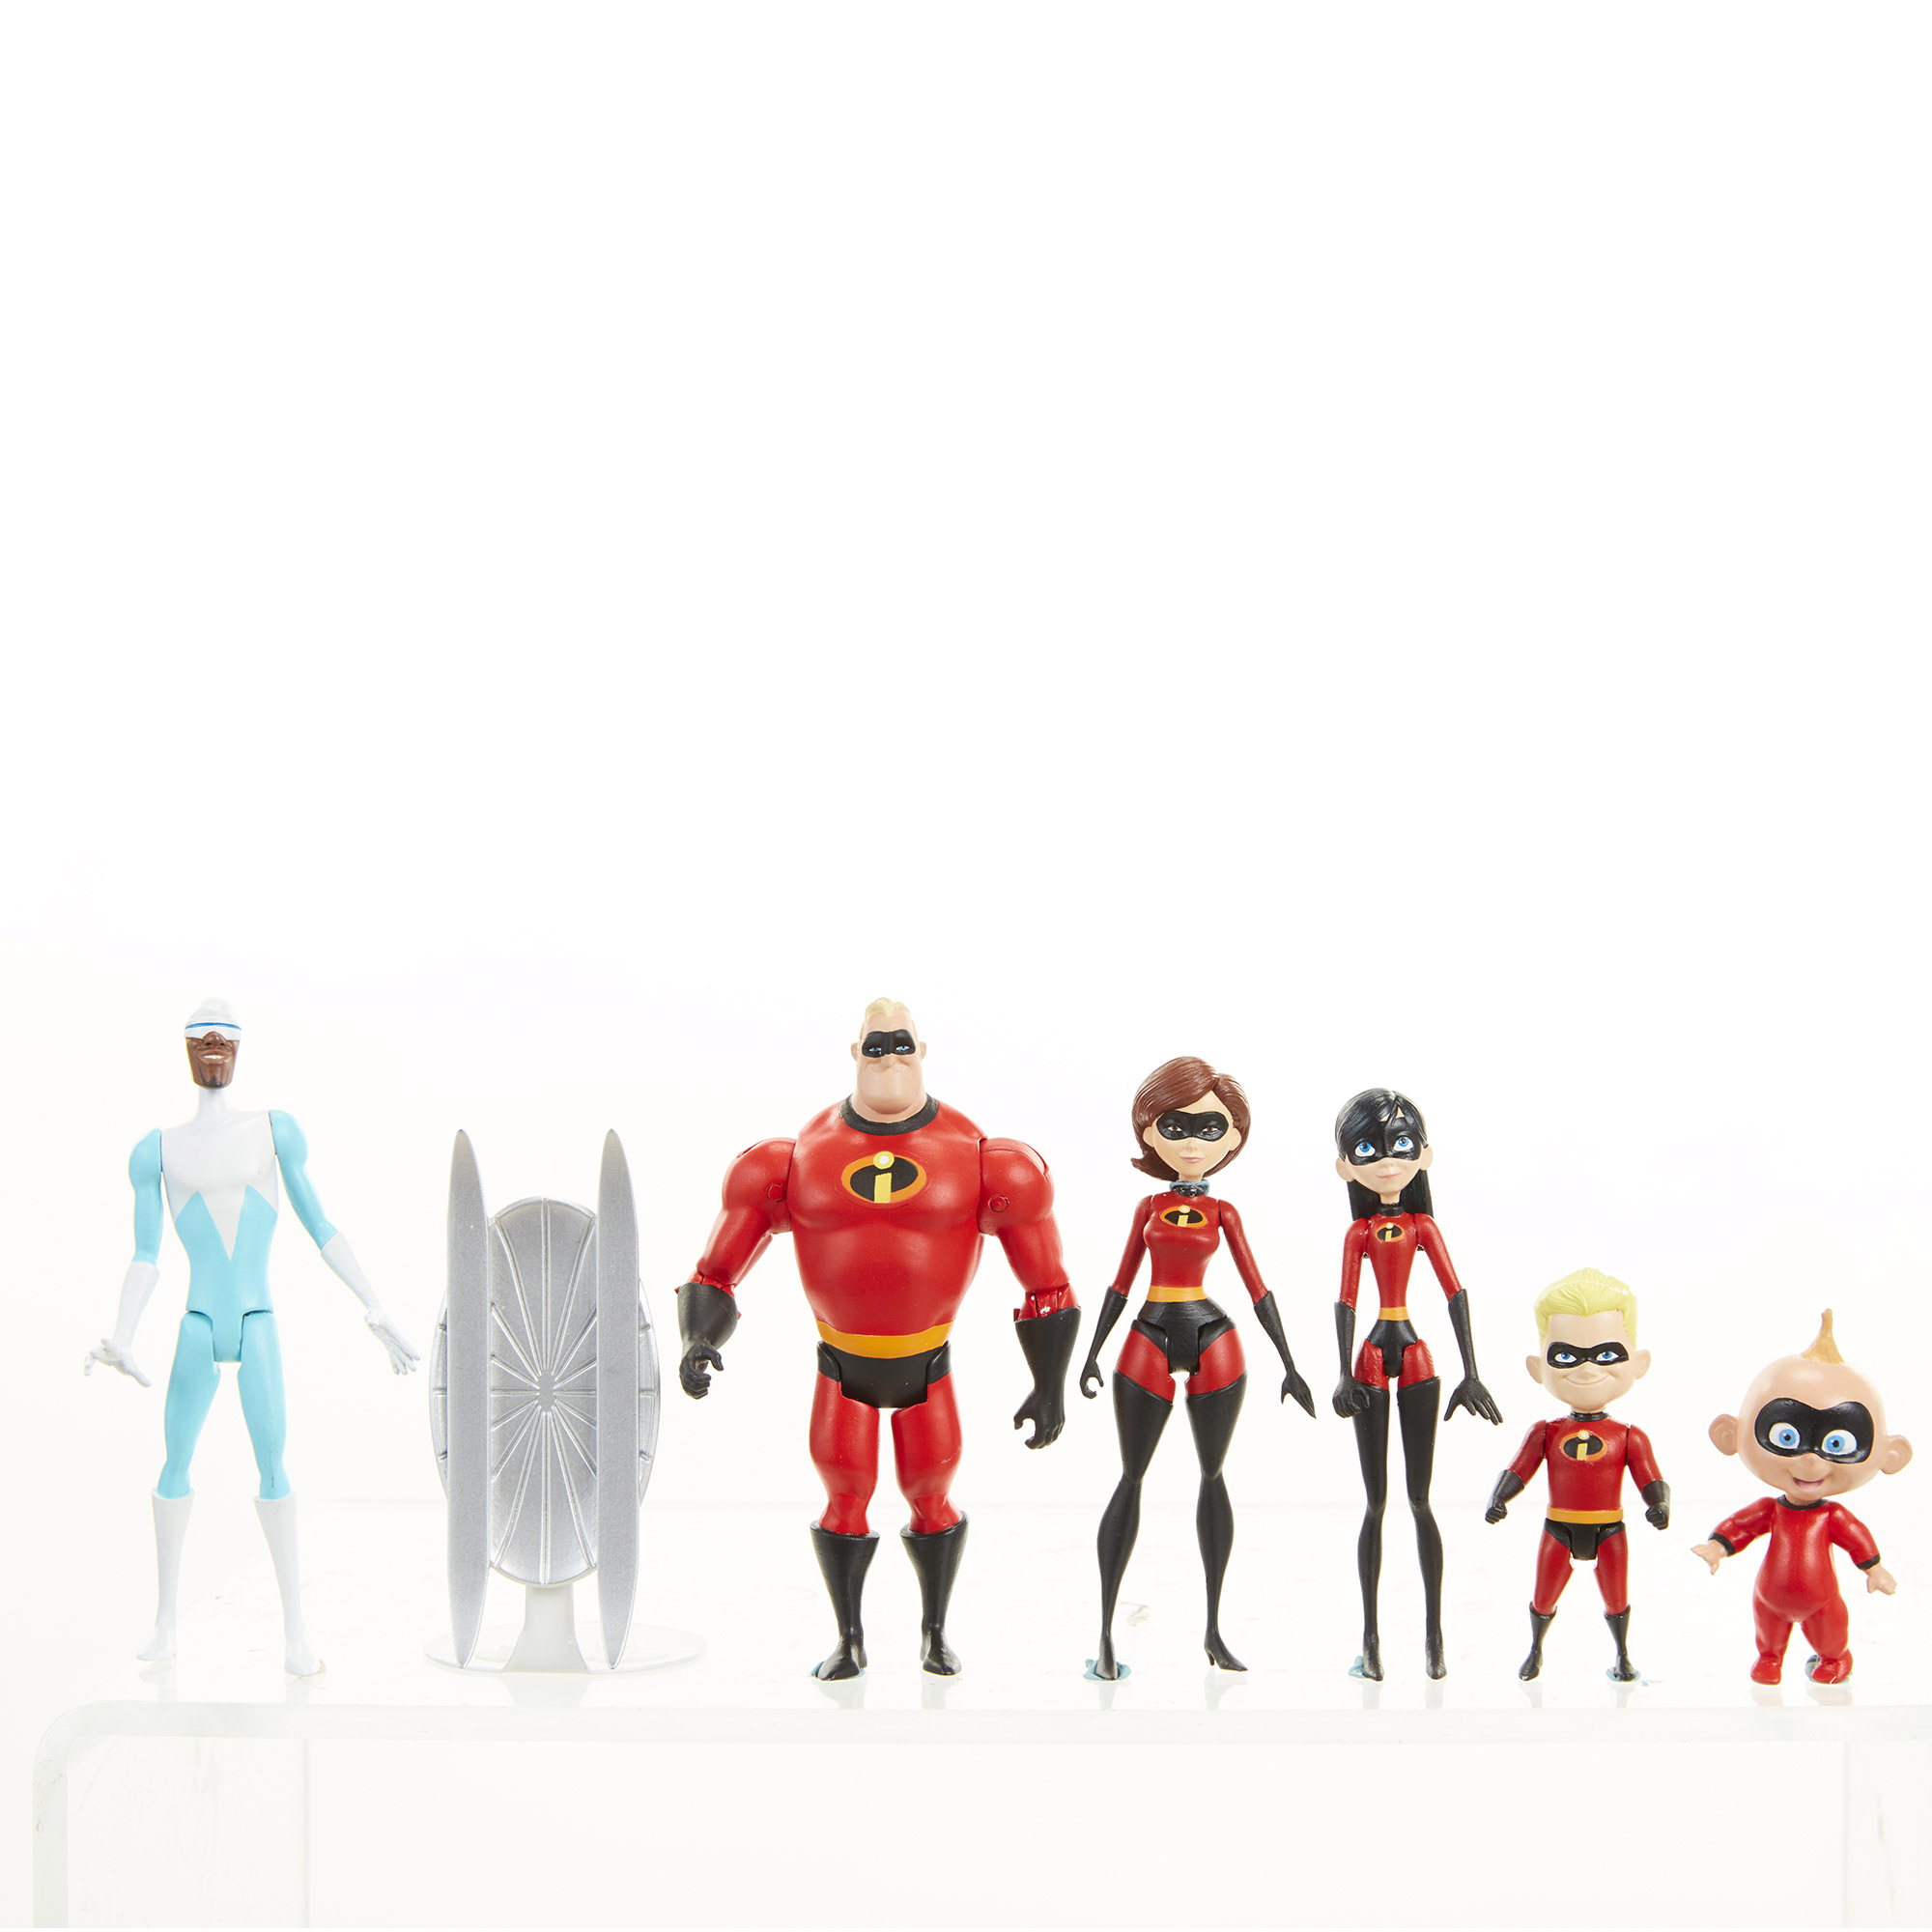 4-Inch Basic Figures Assortment